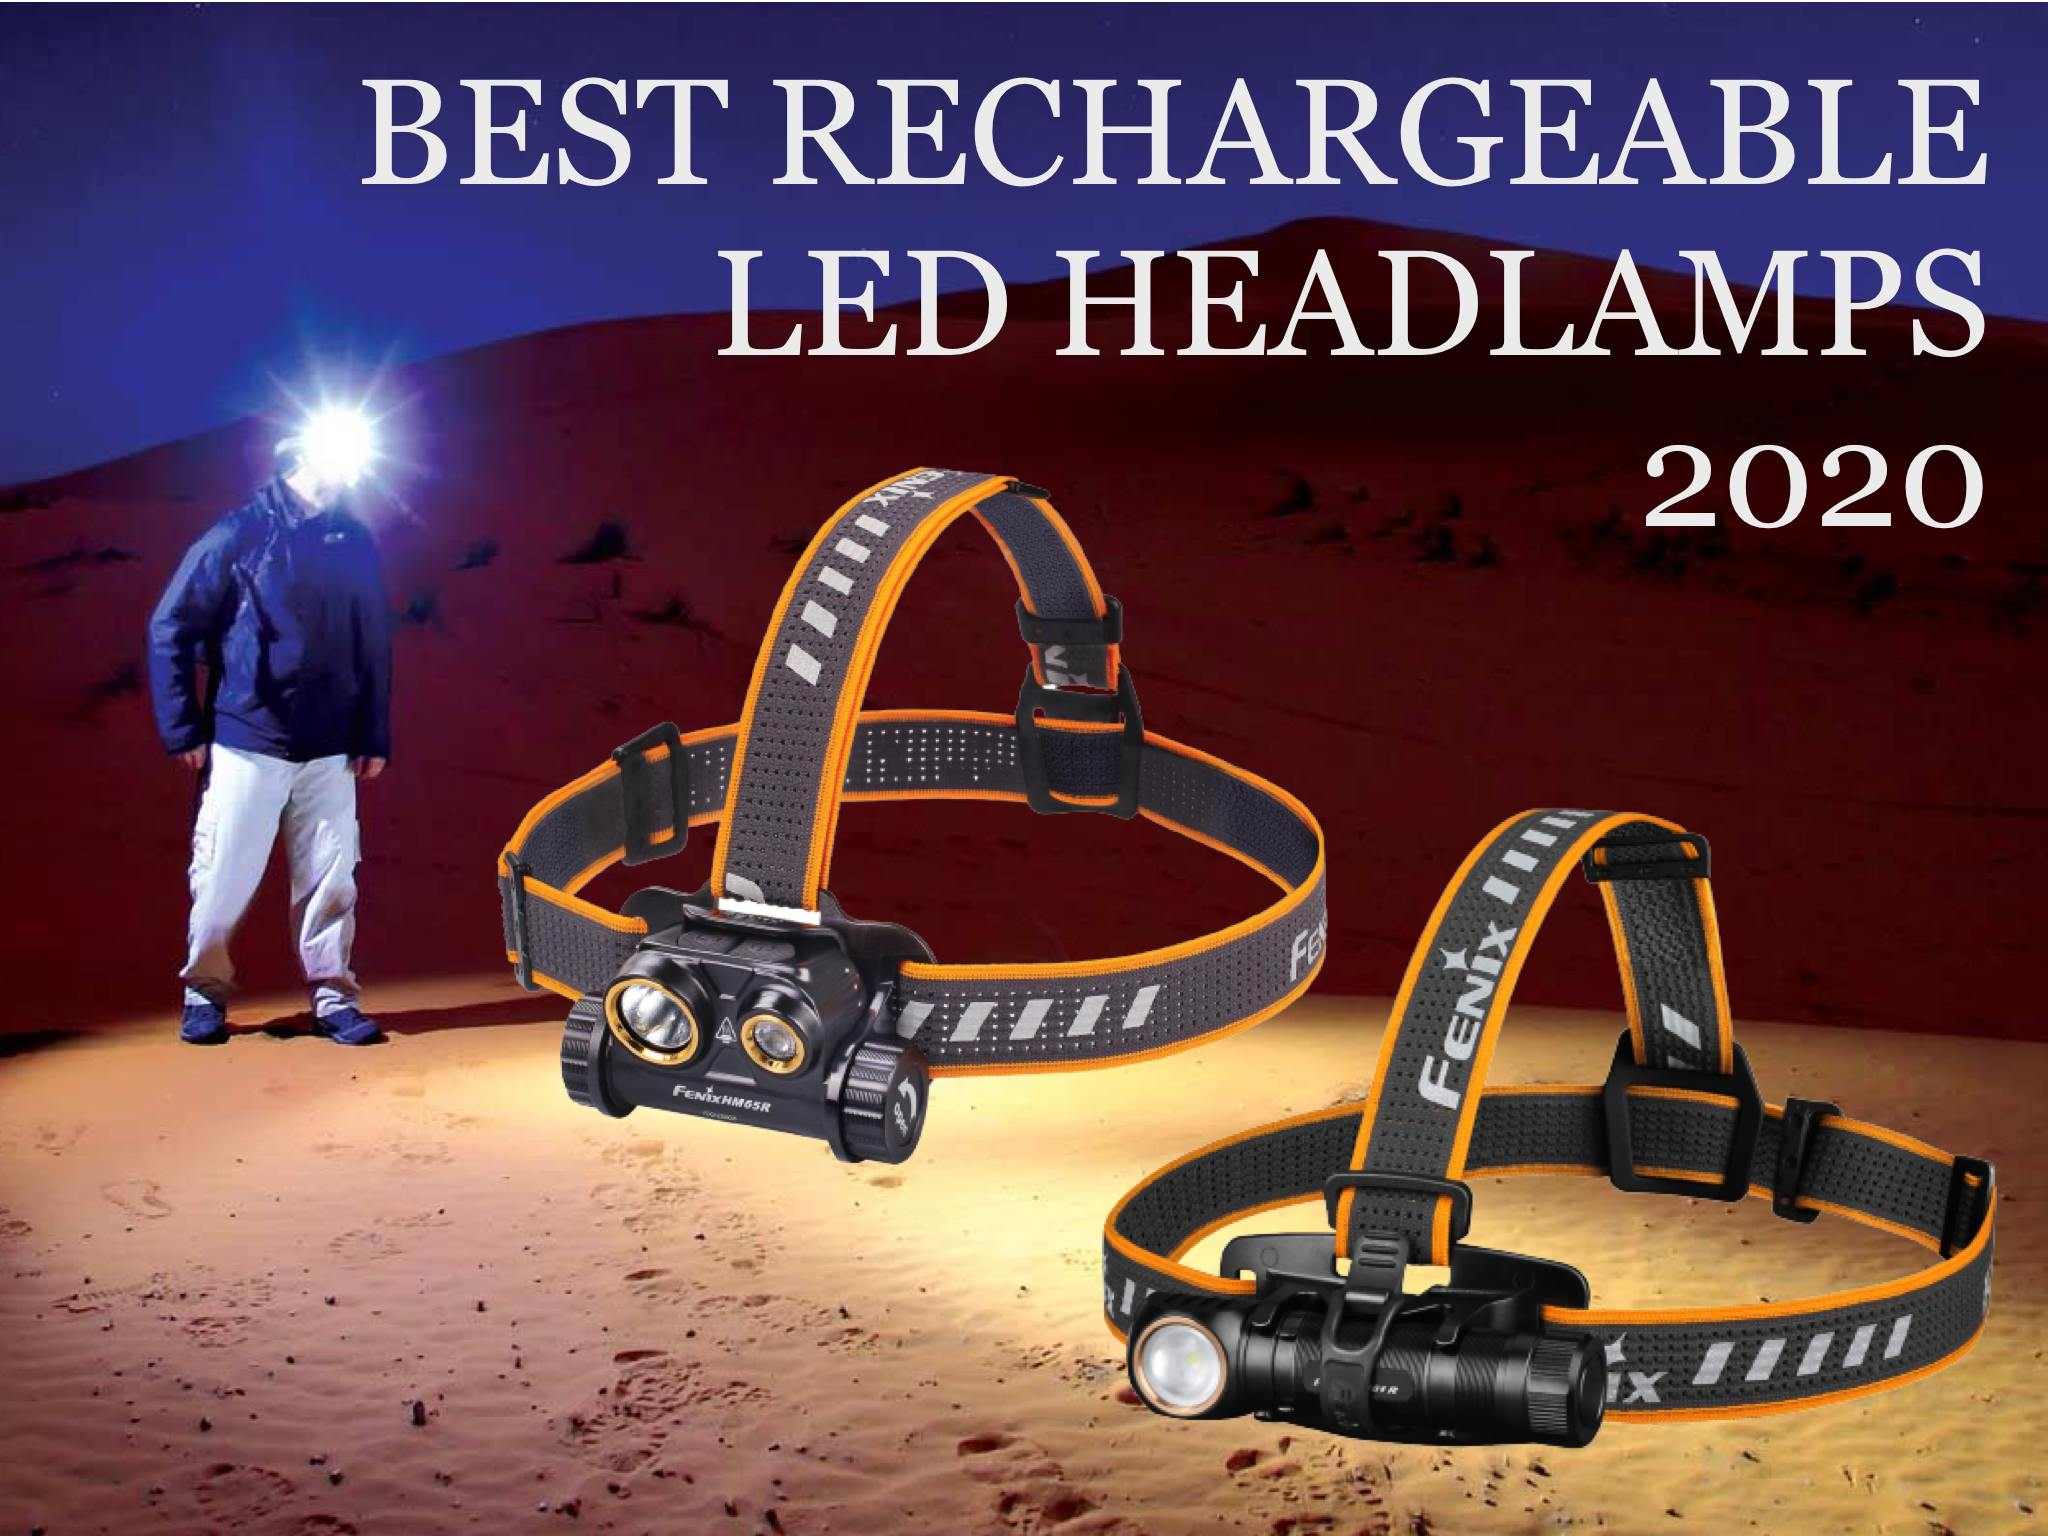 Fenix LED Headlamps, Buy Best Rechargeable LED Headlamps Head Torches online in India